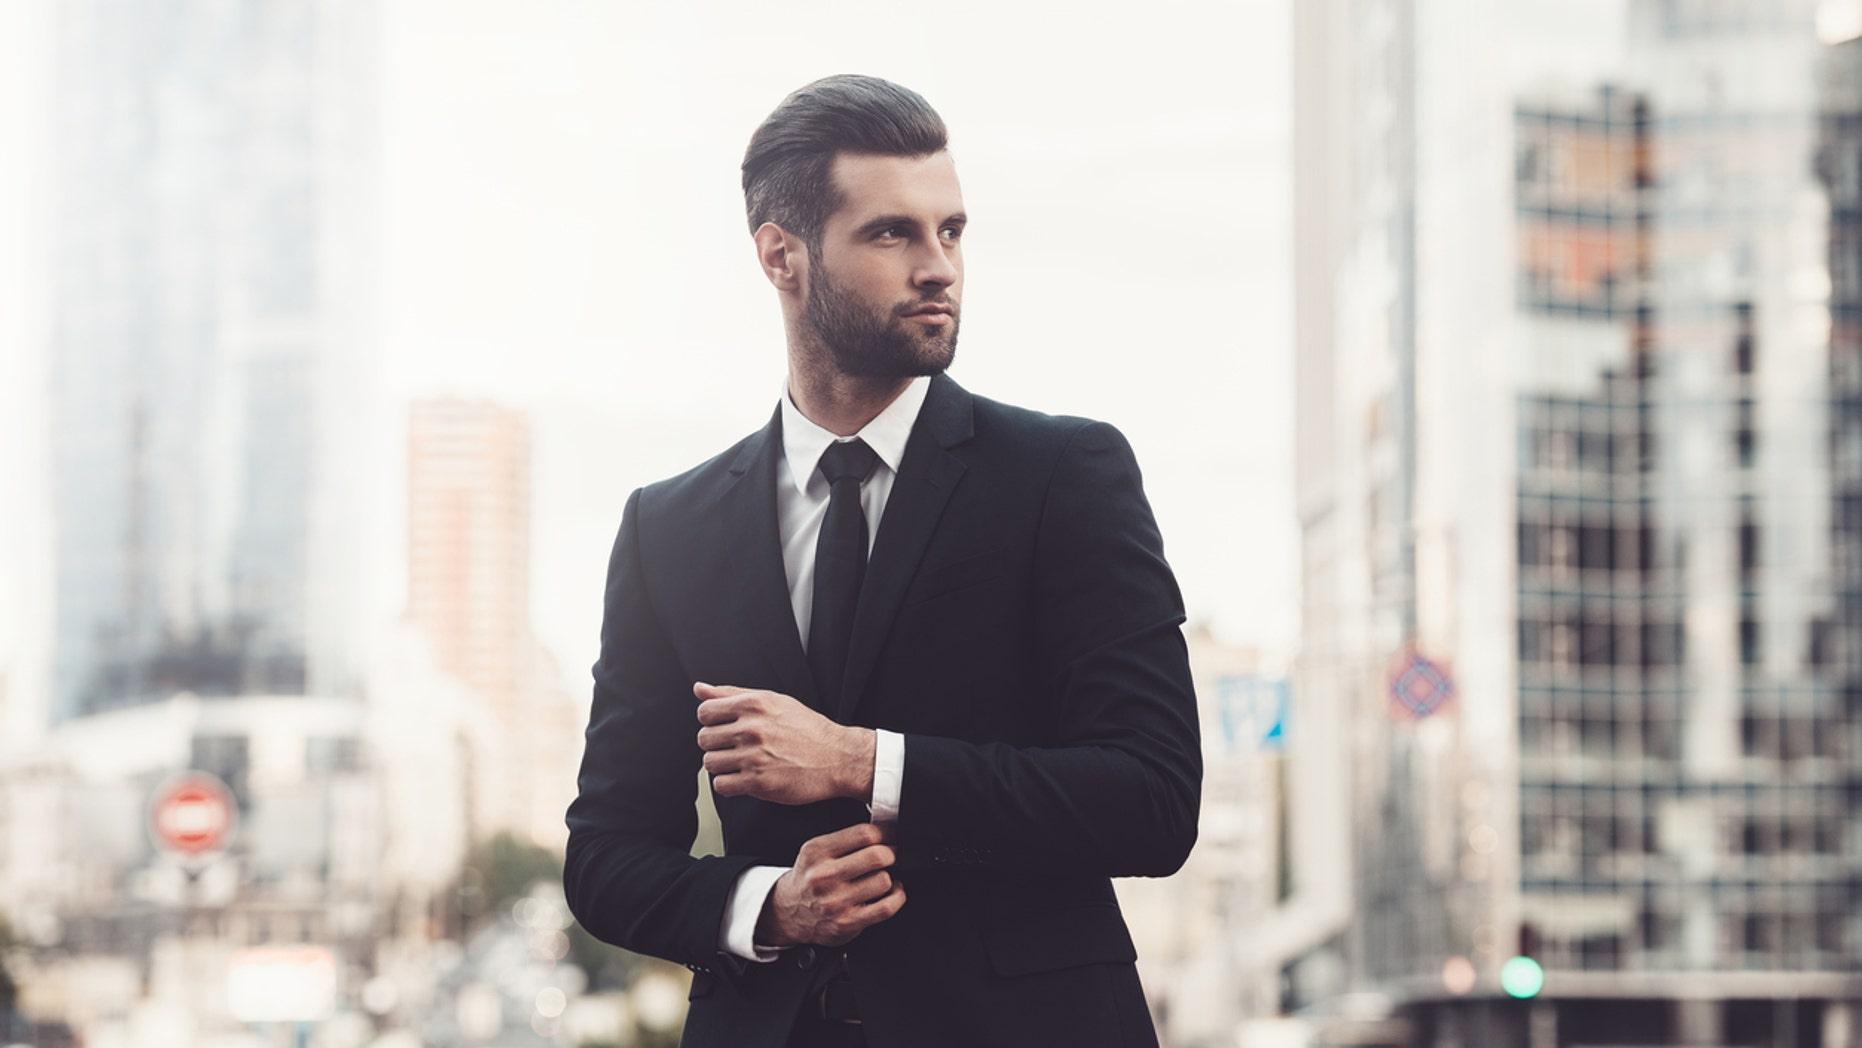 Confident young man in full suit adjusting his sleeve and looking away while standing outdoors with cityscape in the background